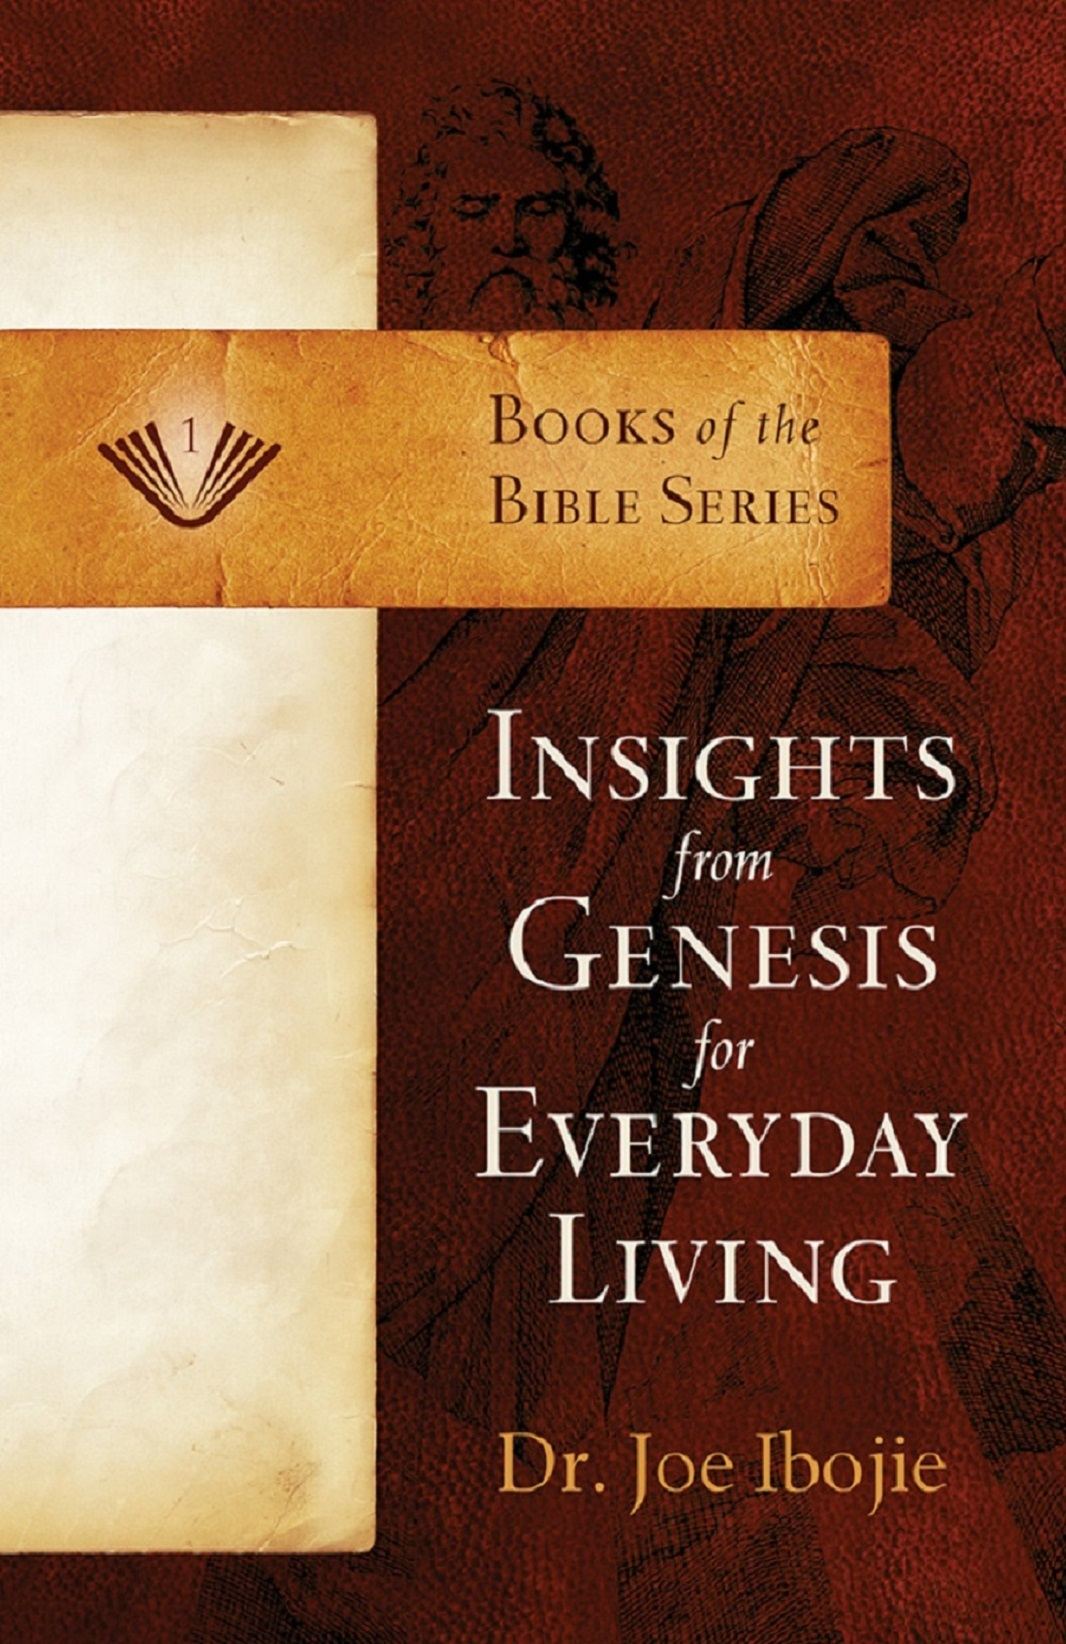 Insights from Genesis for every living